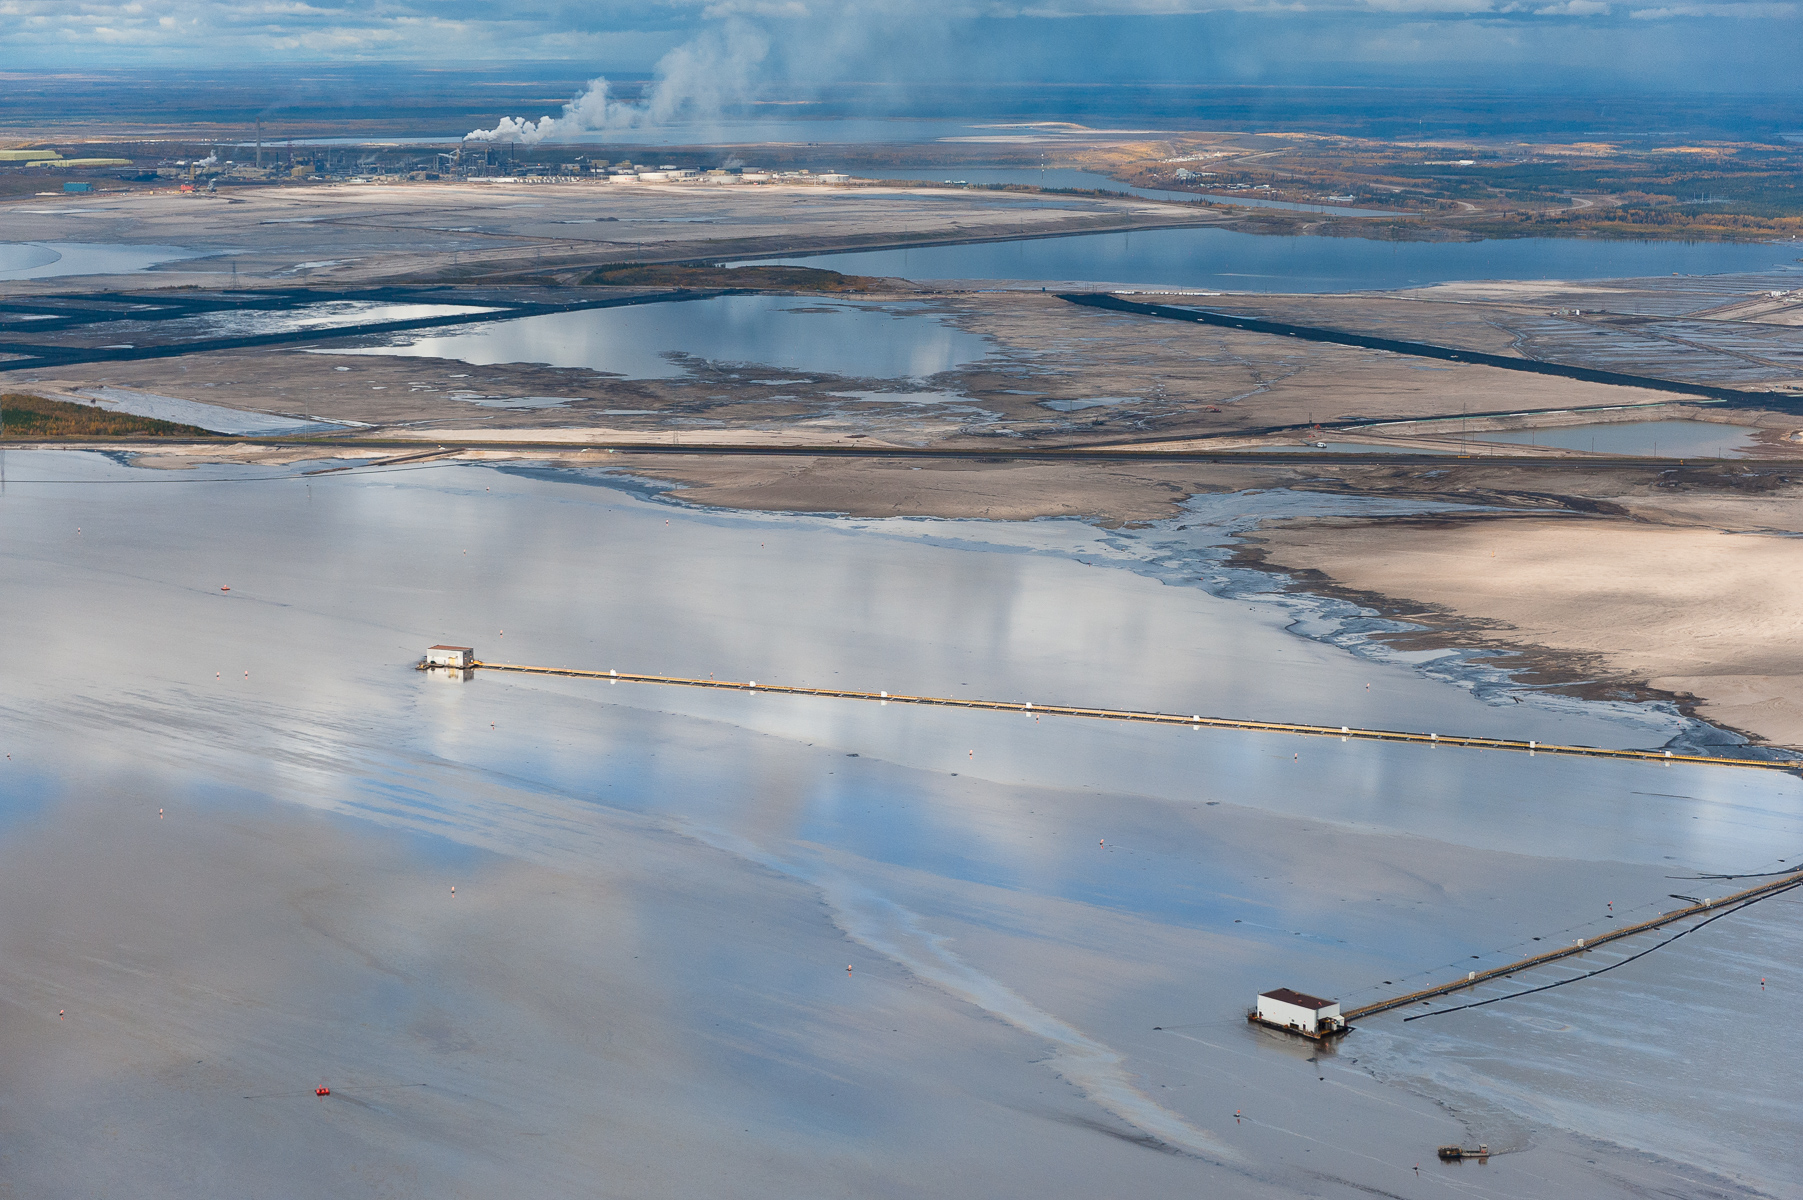 Tailings Ponds. These vast toxic lakes are completely unlined and nearly a dozen of them lie on either side of the Athabasca River. Individual ponds can range in size up to 8,850 acres.